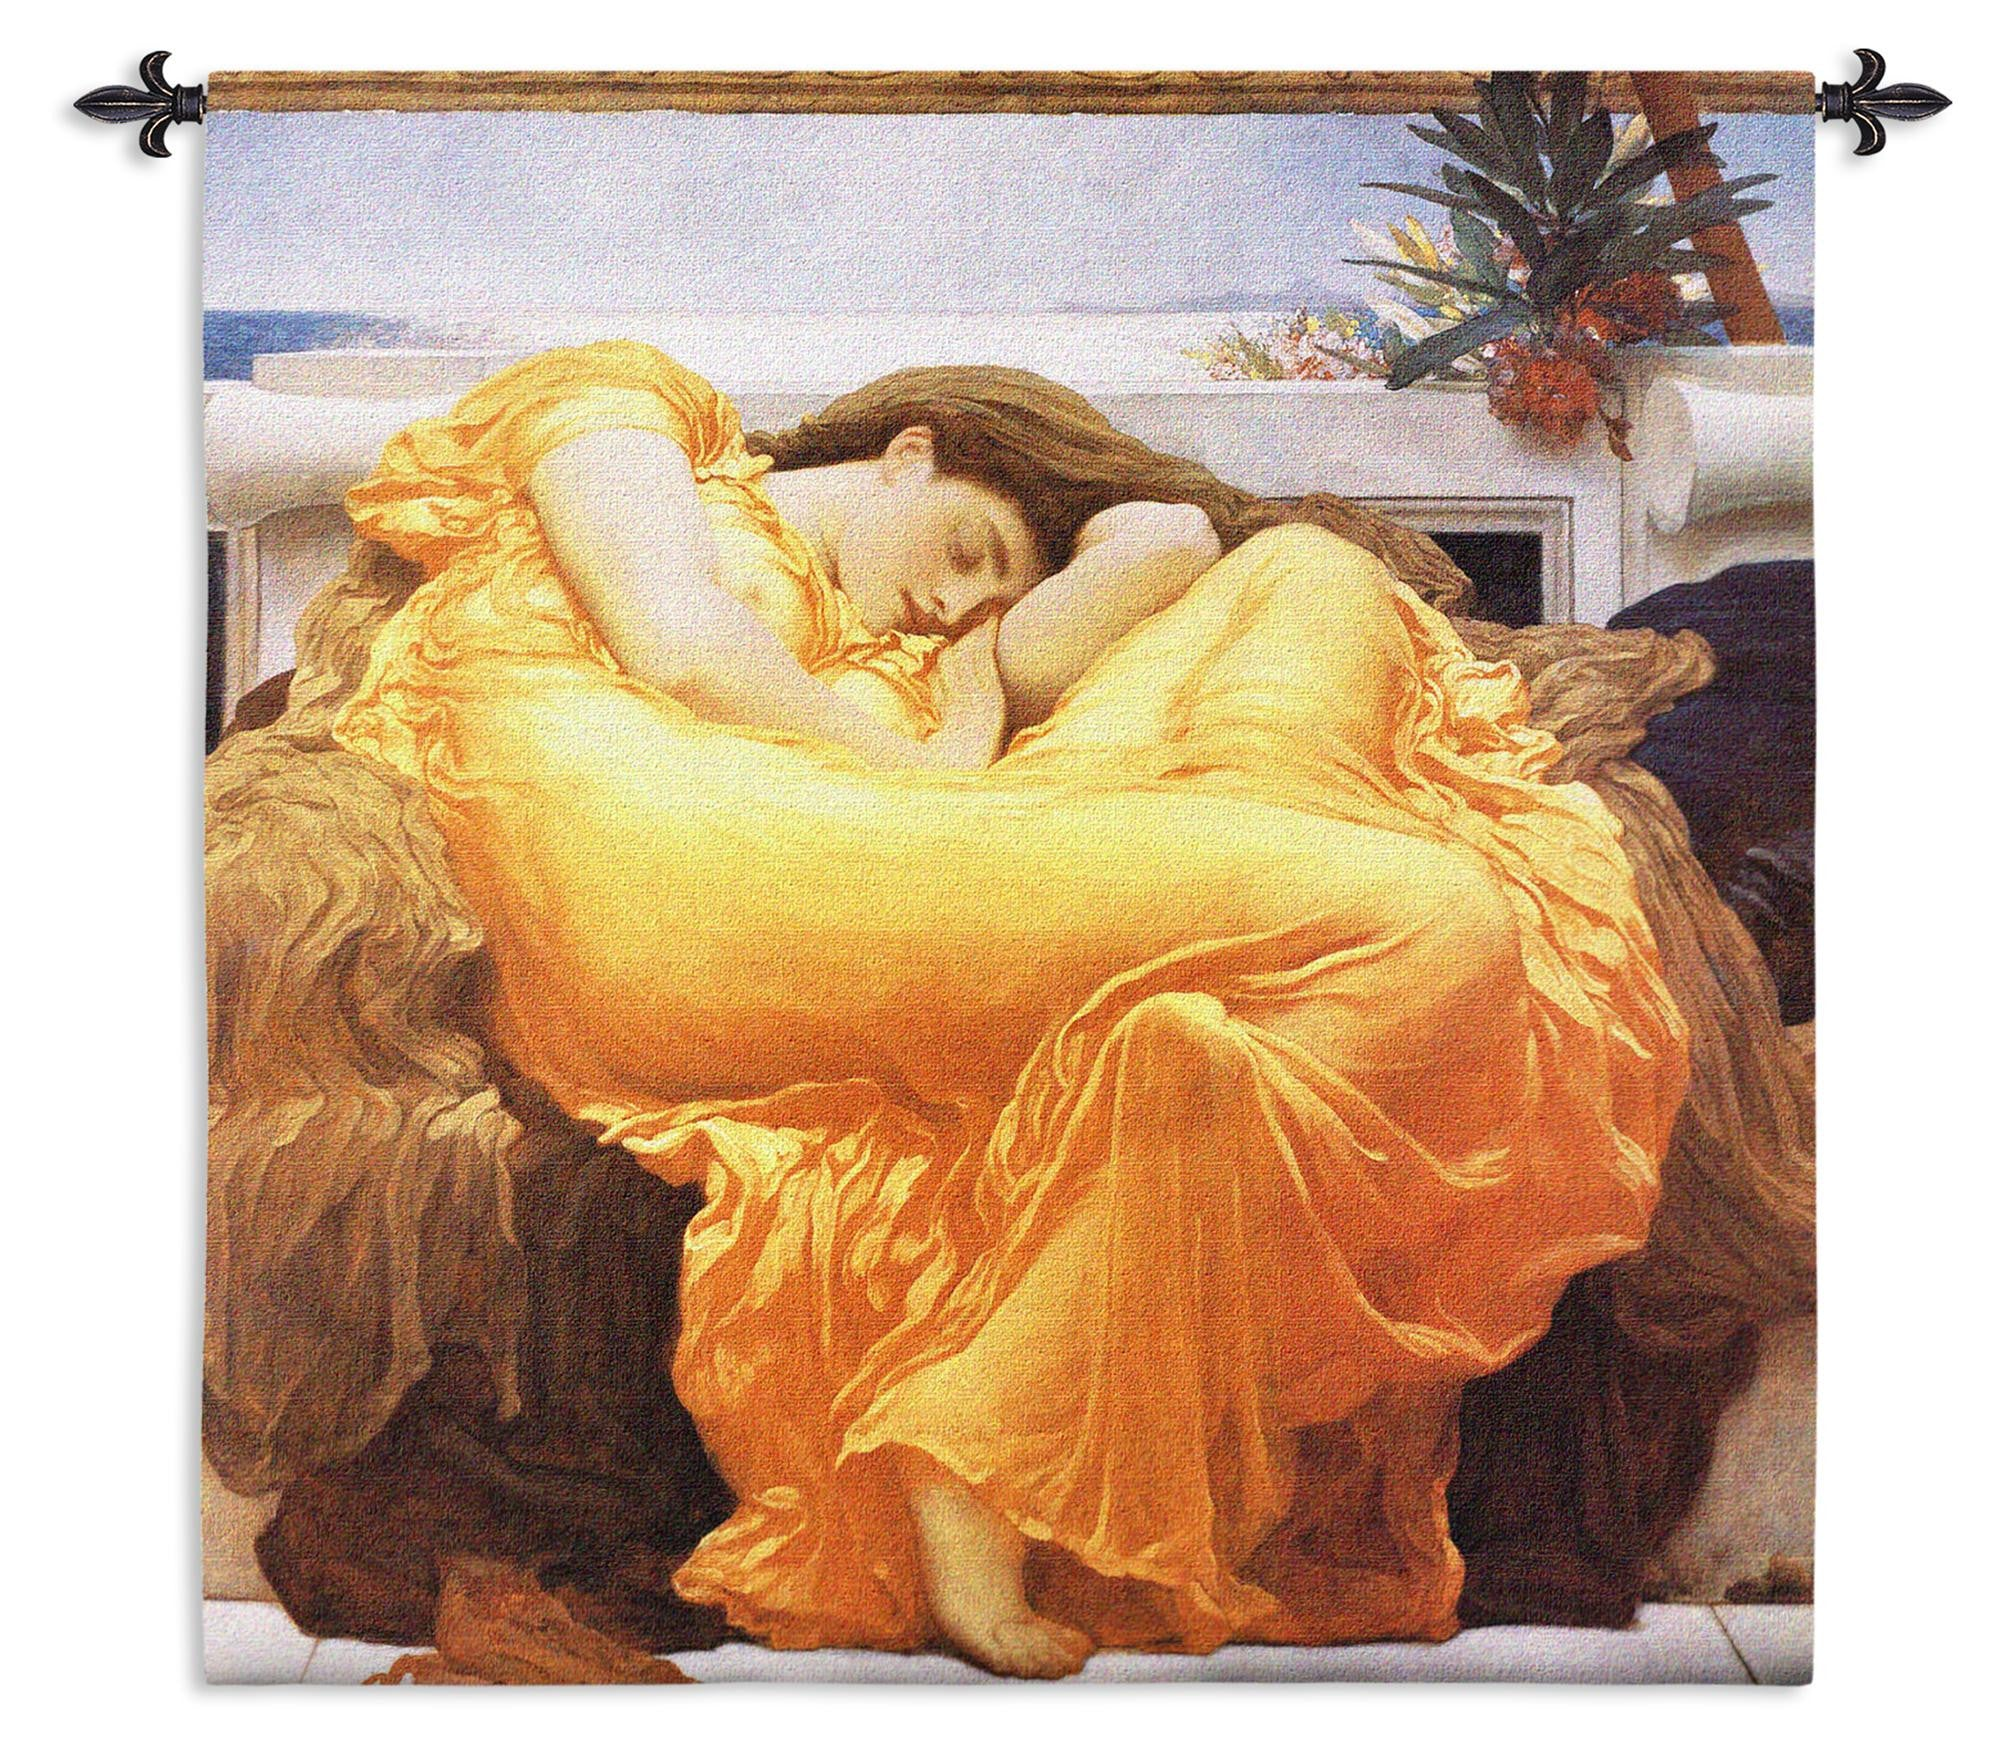 Flaming June by Leighton Woven Tapestry